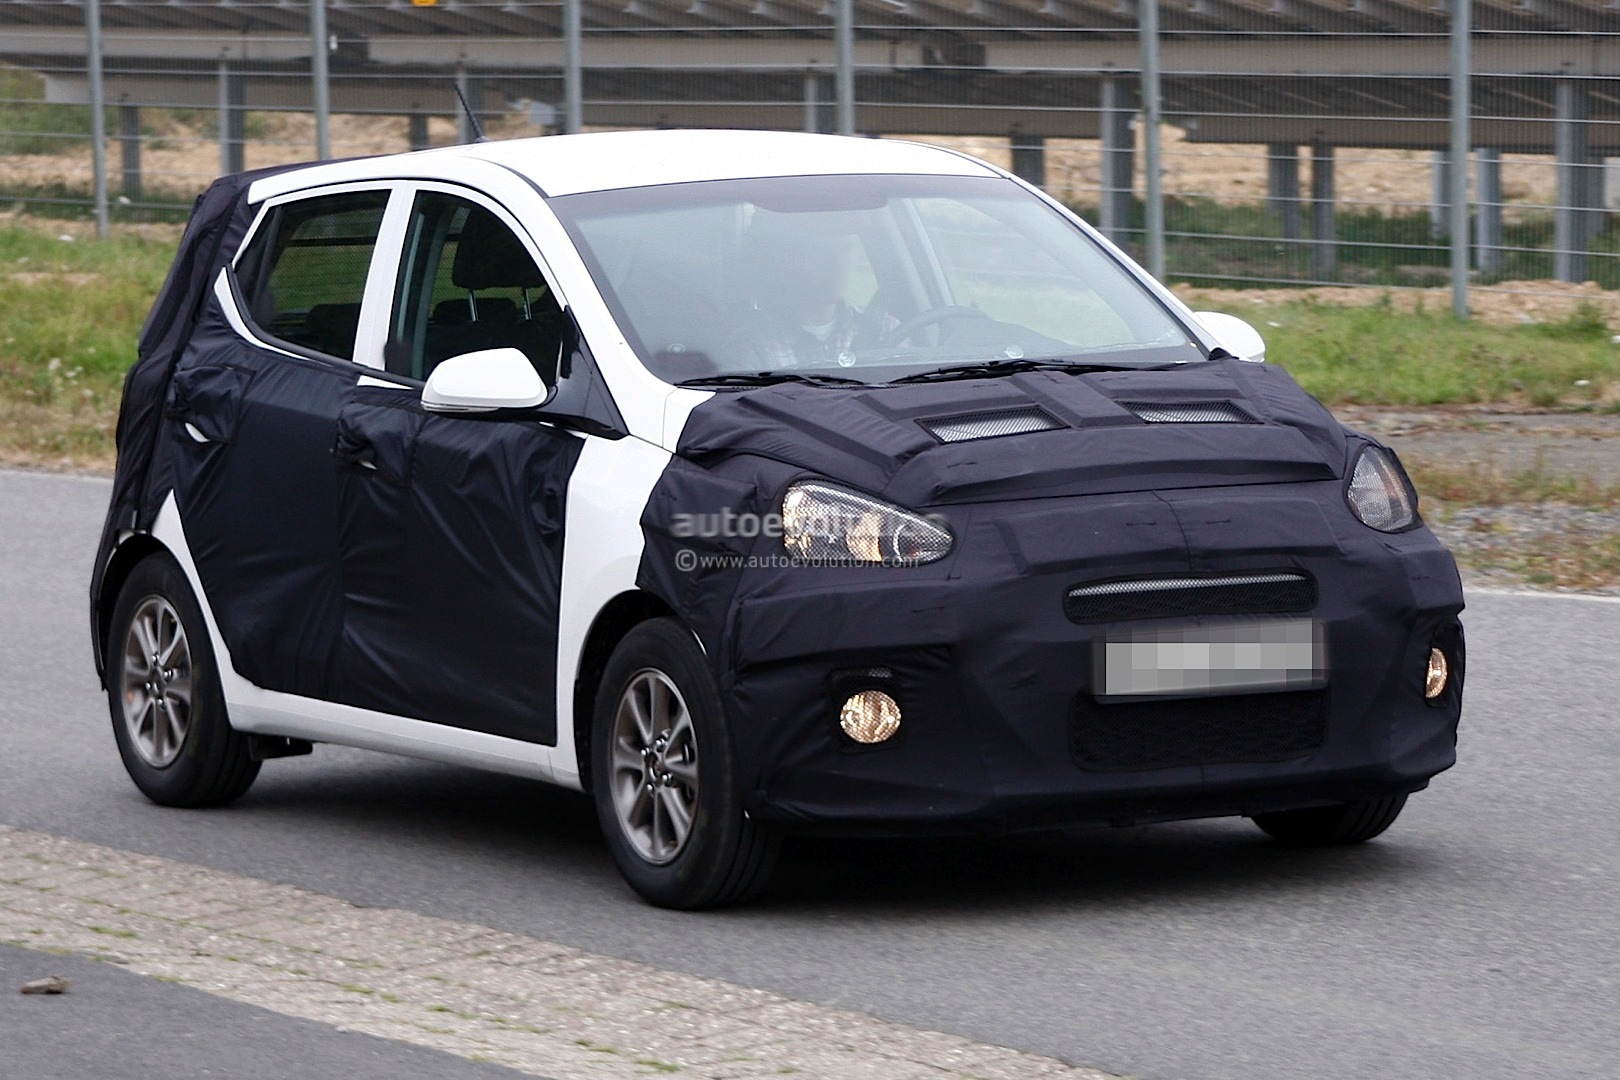 spyshots 2014 hyundai i10 first photos autoevolution. Black Bedroom Furniture Sets. Home Design Ideas